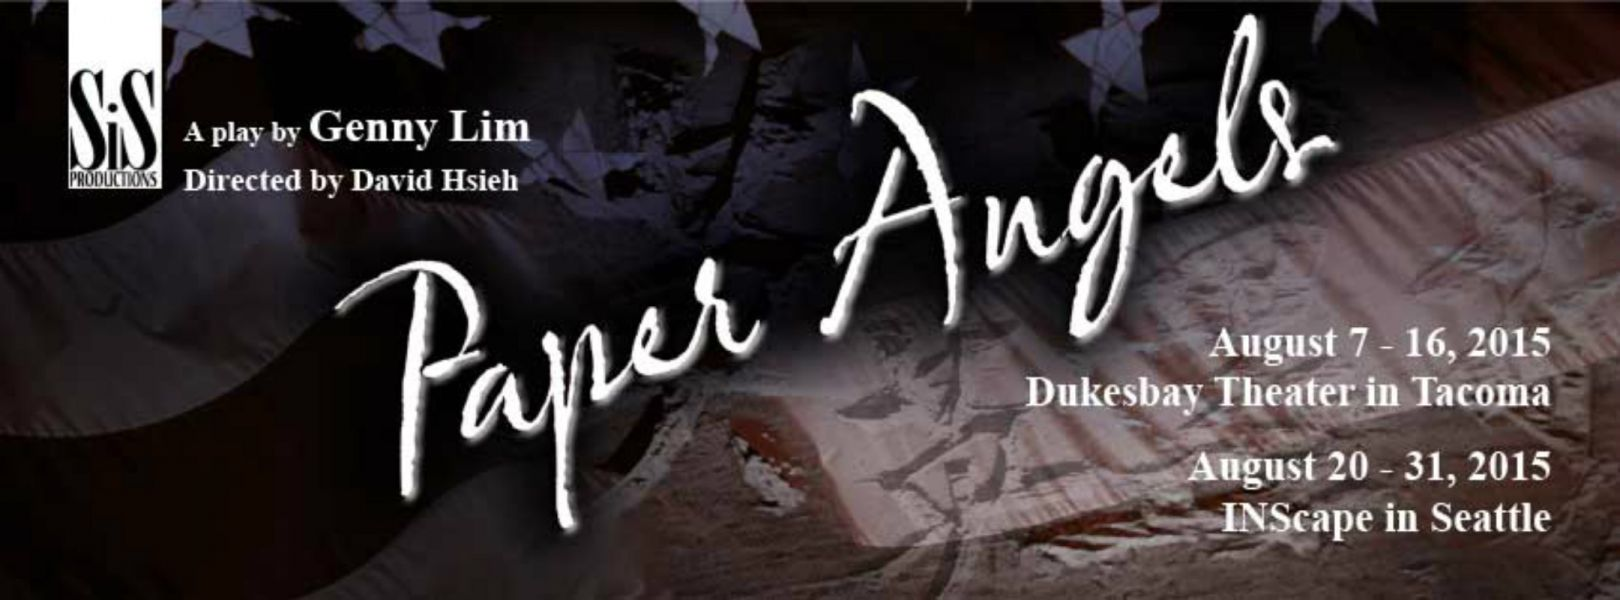 "SIS Productions presents ""Paper Angels"" Aug. 6-17 at Dukesbay Theater in Tacoma"